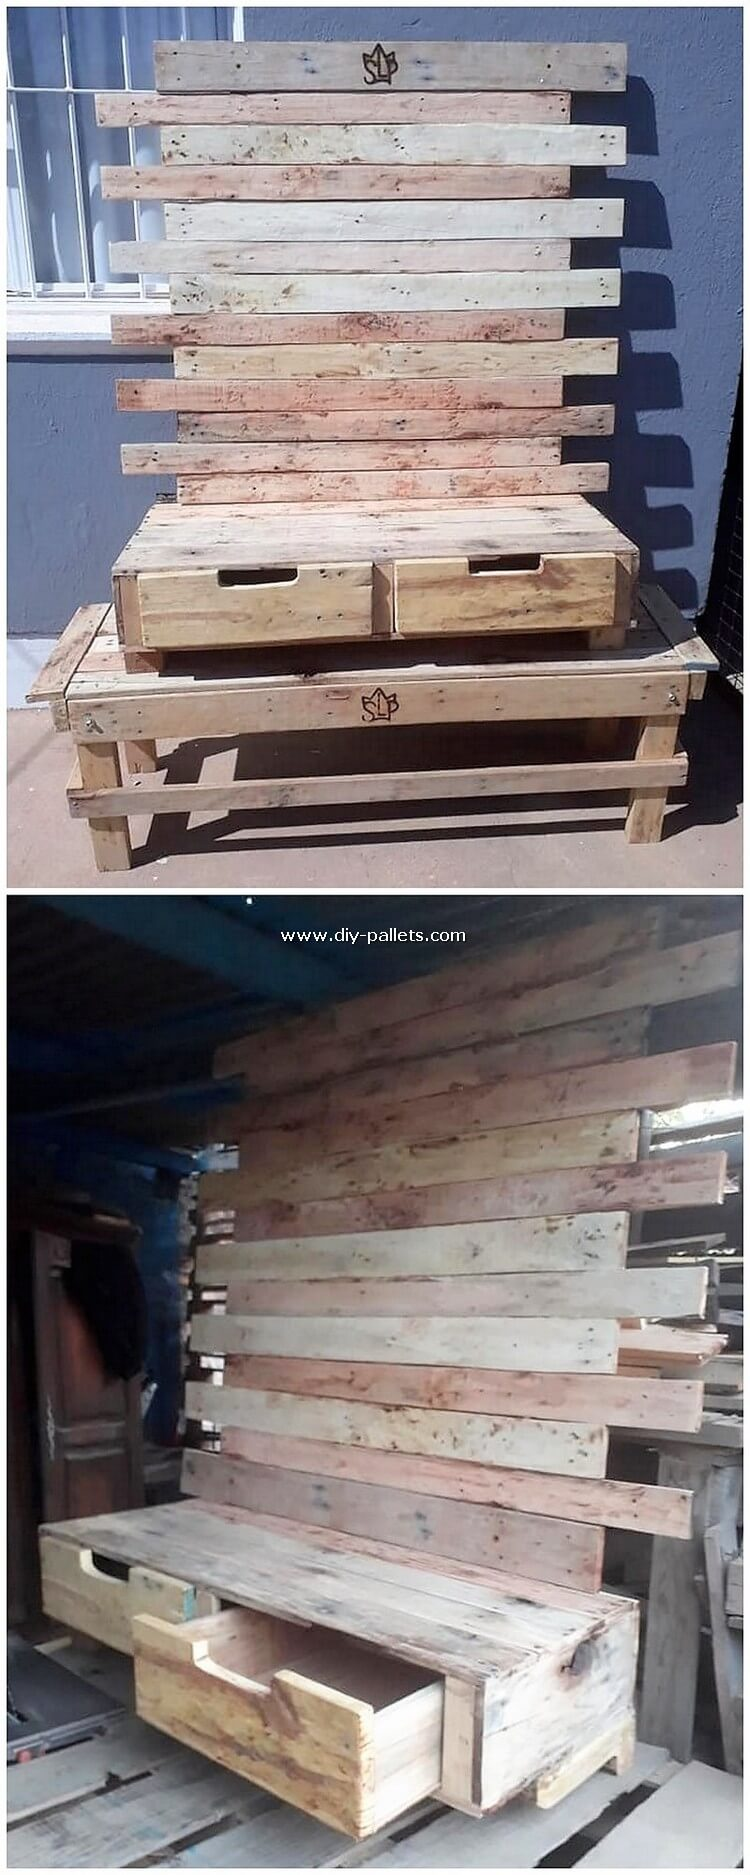 Pallet Wall LED Holder with Drawers